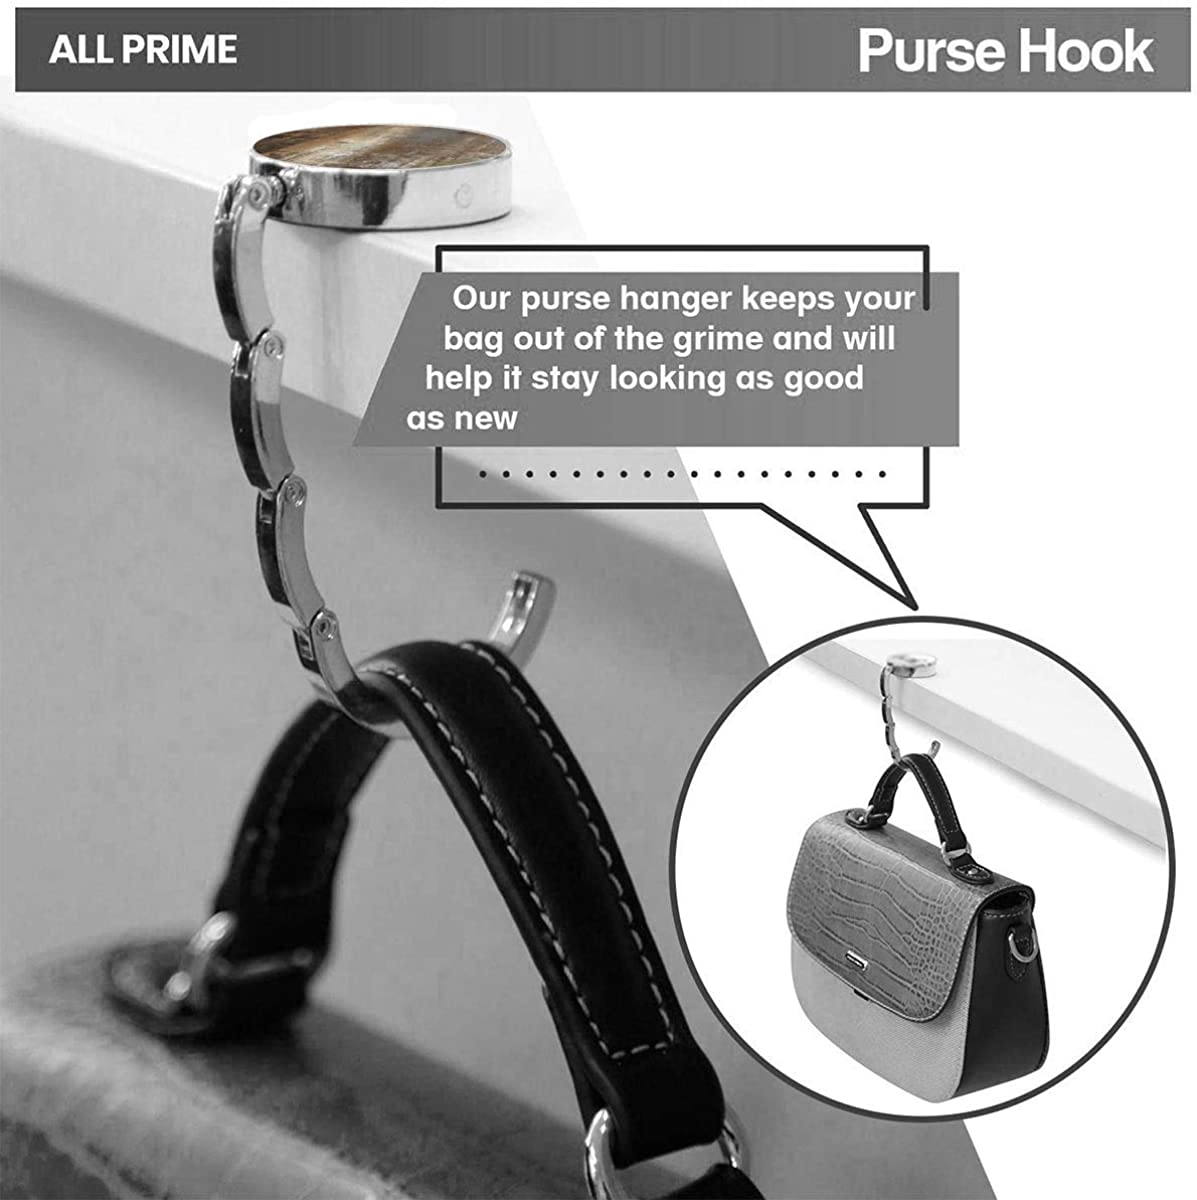 SDxingyuan Cute Foldable Purse Hanger For Table,Personalized Purse Hook For Car Brown Black Slender Neutral Abstract Beige